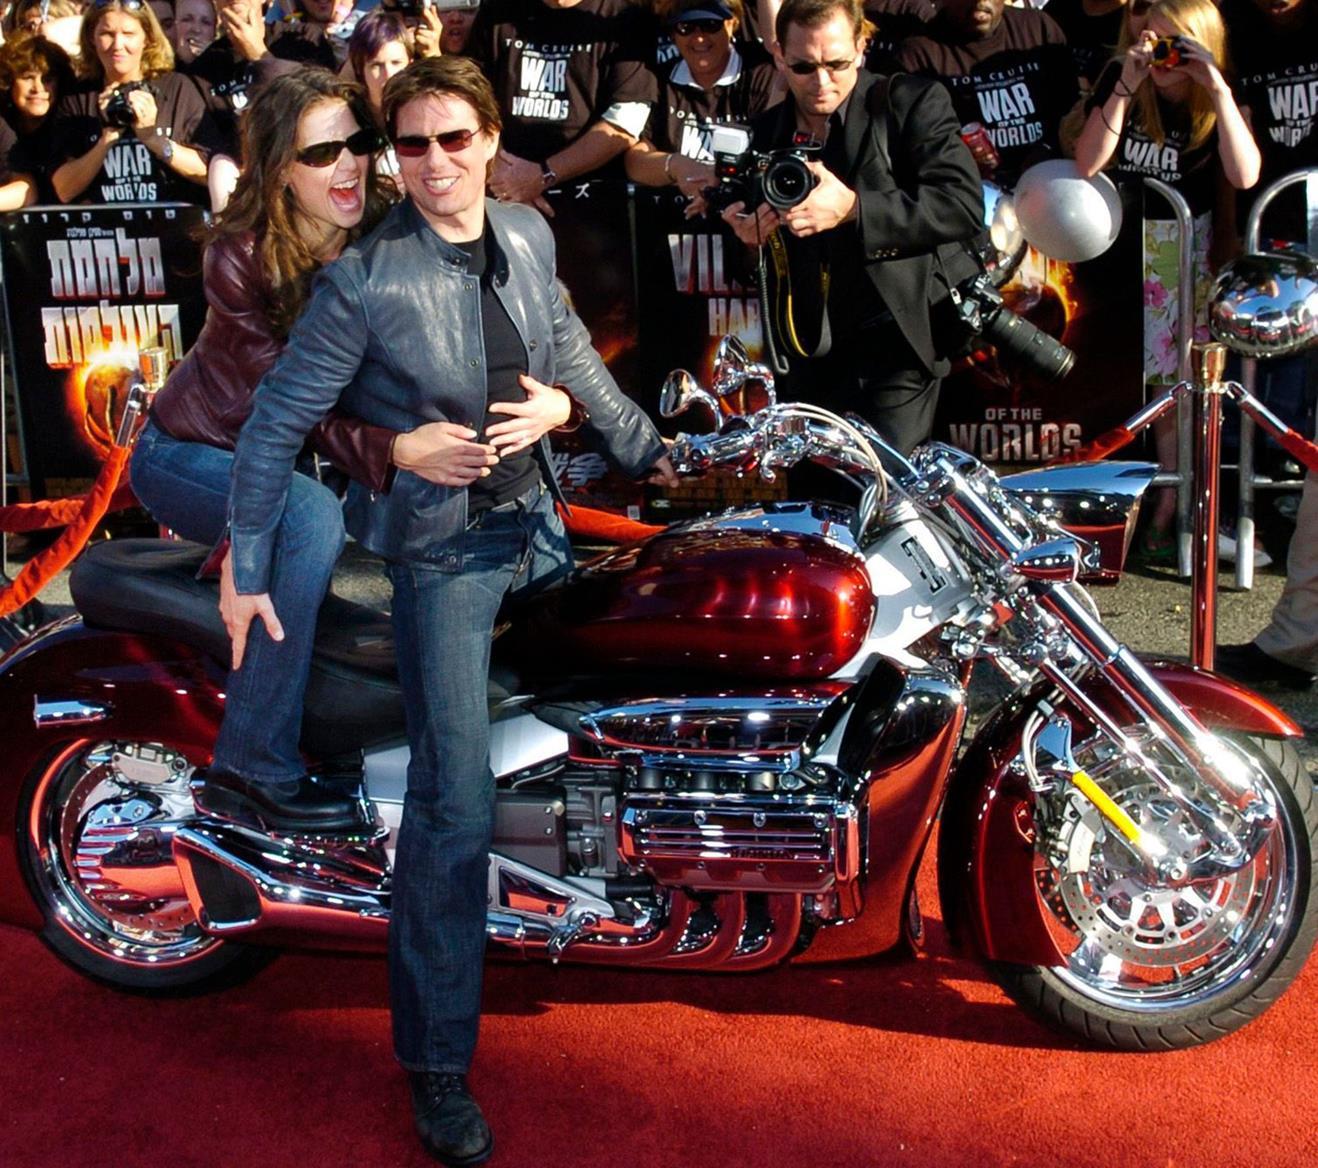 Cruise arrived at the War of the Worlds premiere on a Honda Valkyrie